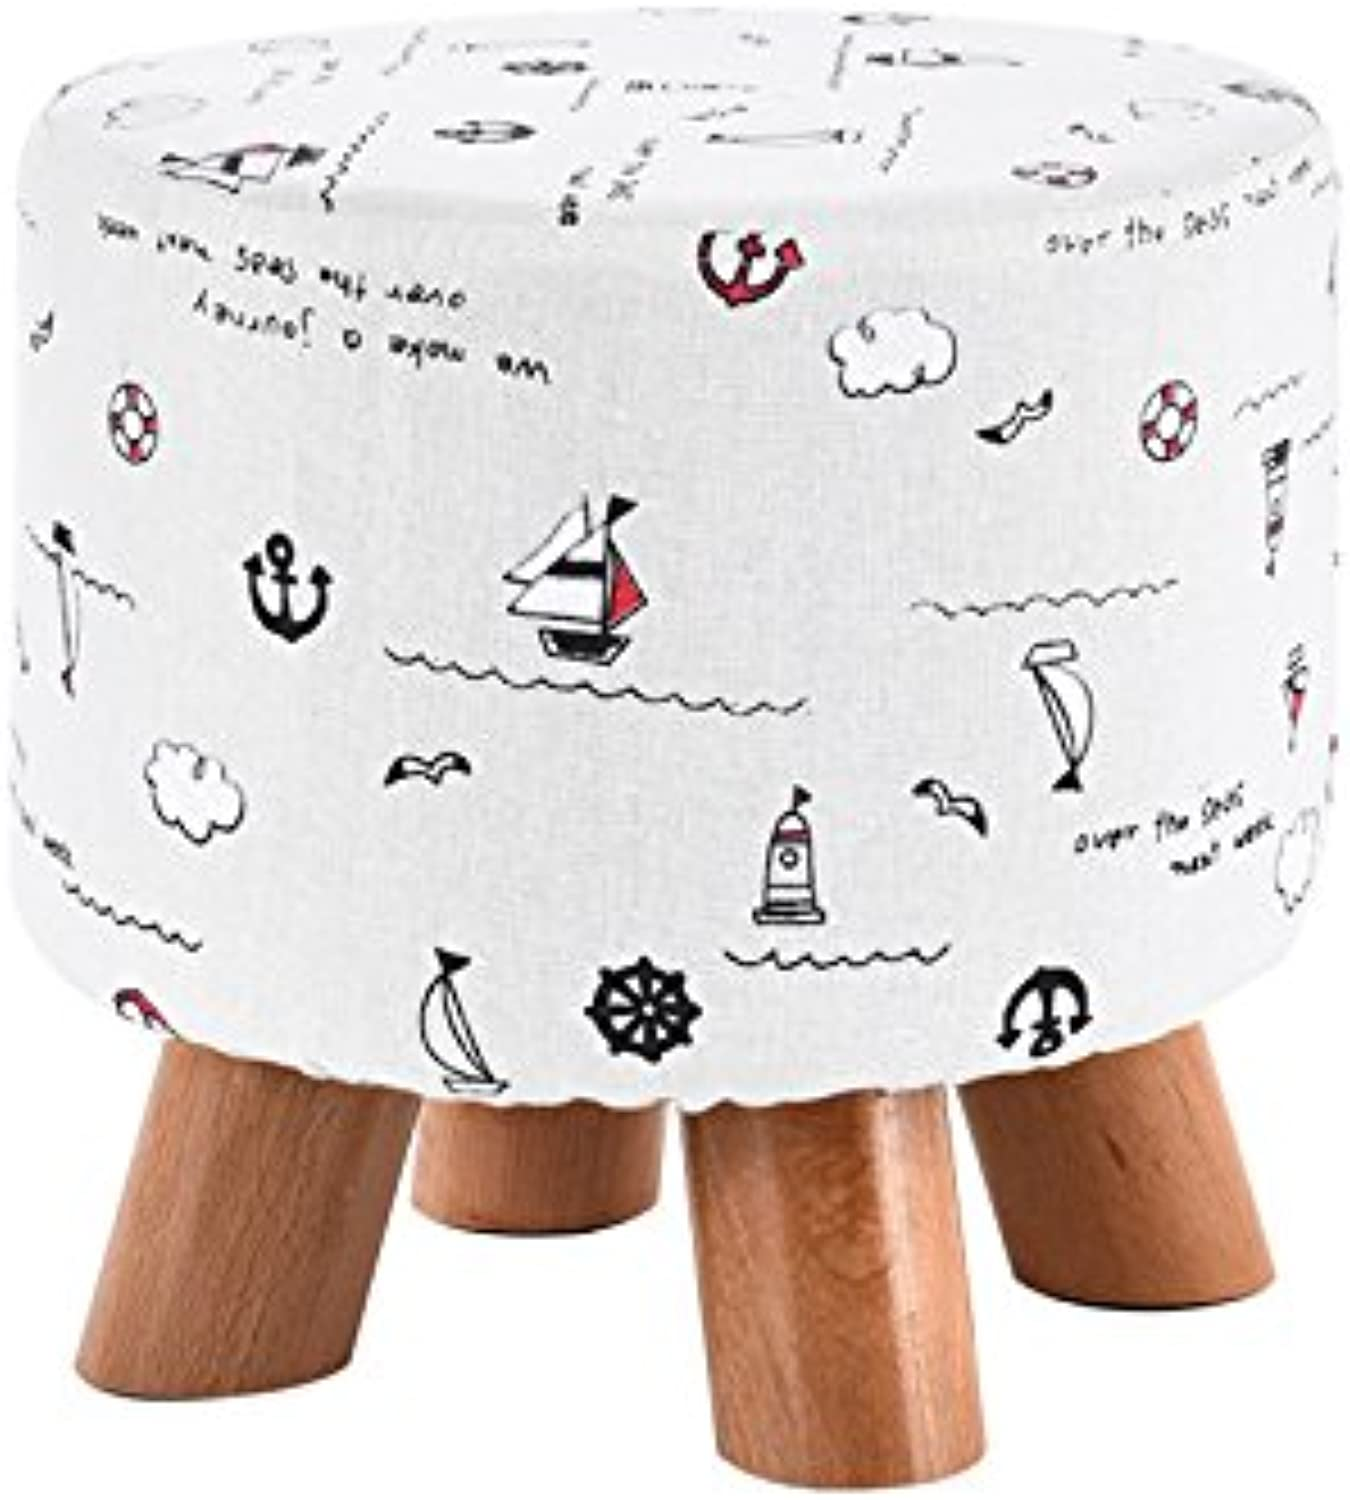 Dana Carrie Stool Fashion on a Low stool Solid Wood Creative Adult Round stool Home Fabric Sofa Chair Small Chair, a Bench, Four Legs Sailing